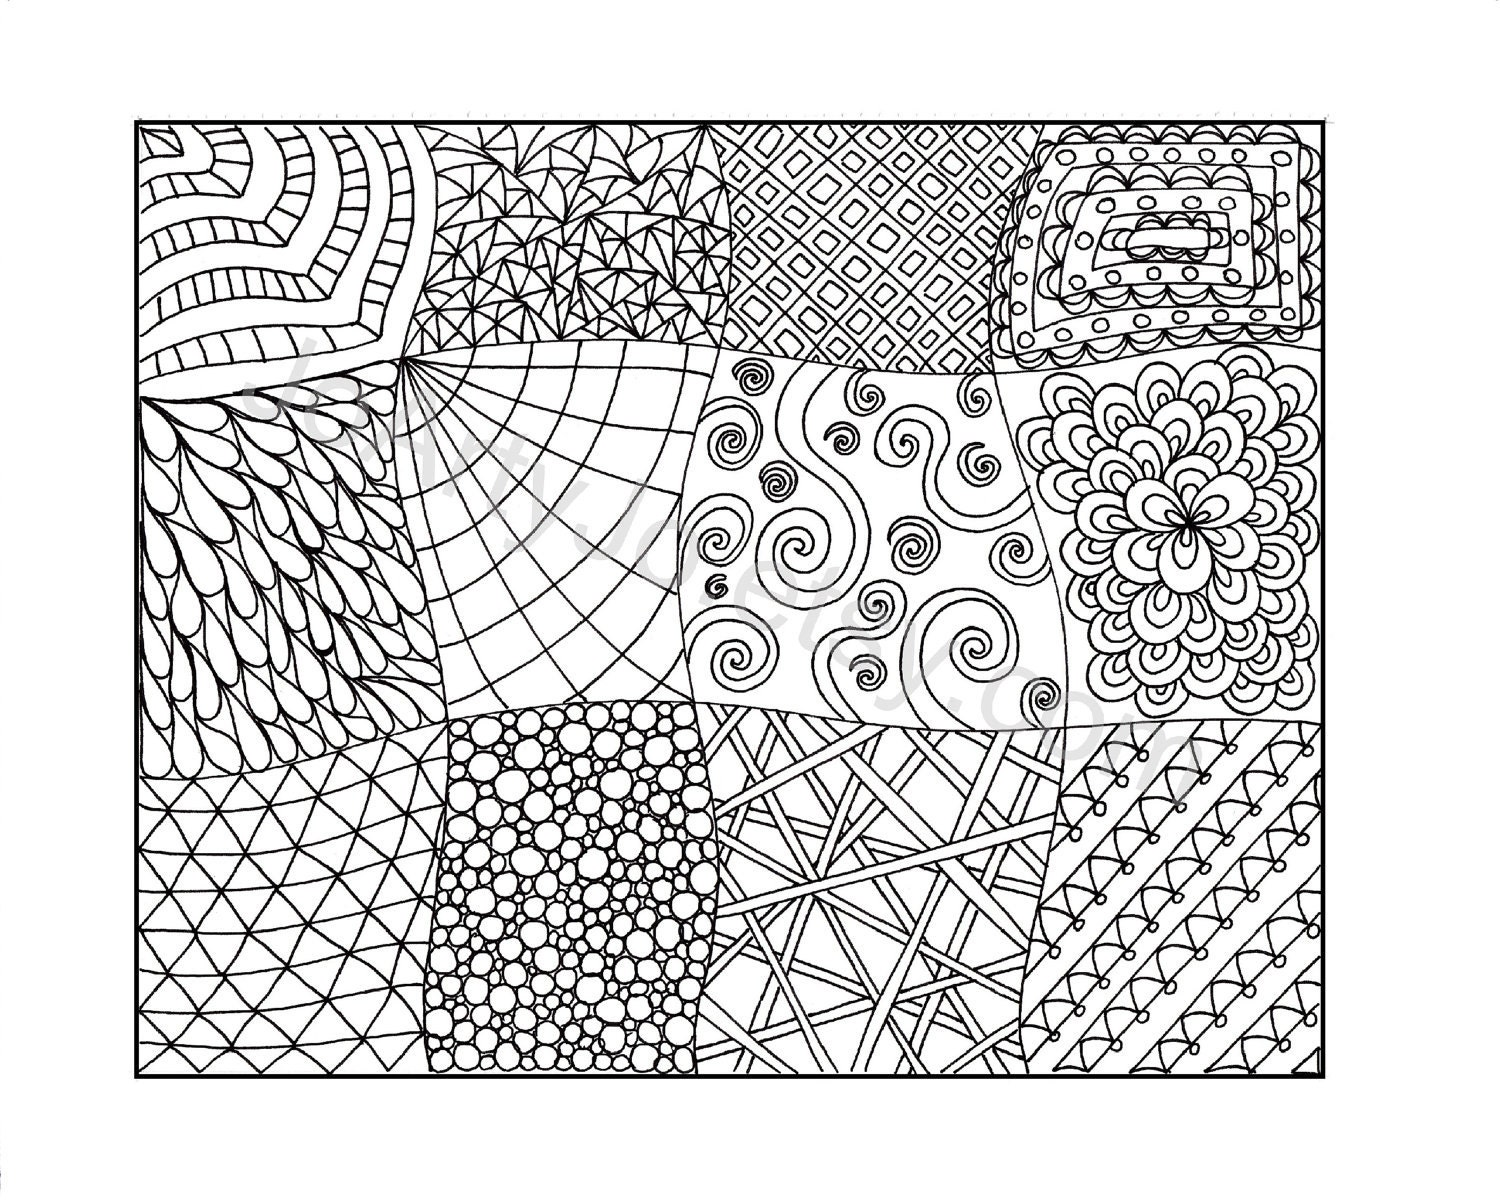 Zendoodle Coloring Page Printable Pdf Zentangle Inspired Pdf Coloring Pages